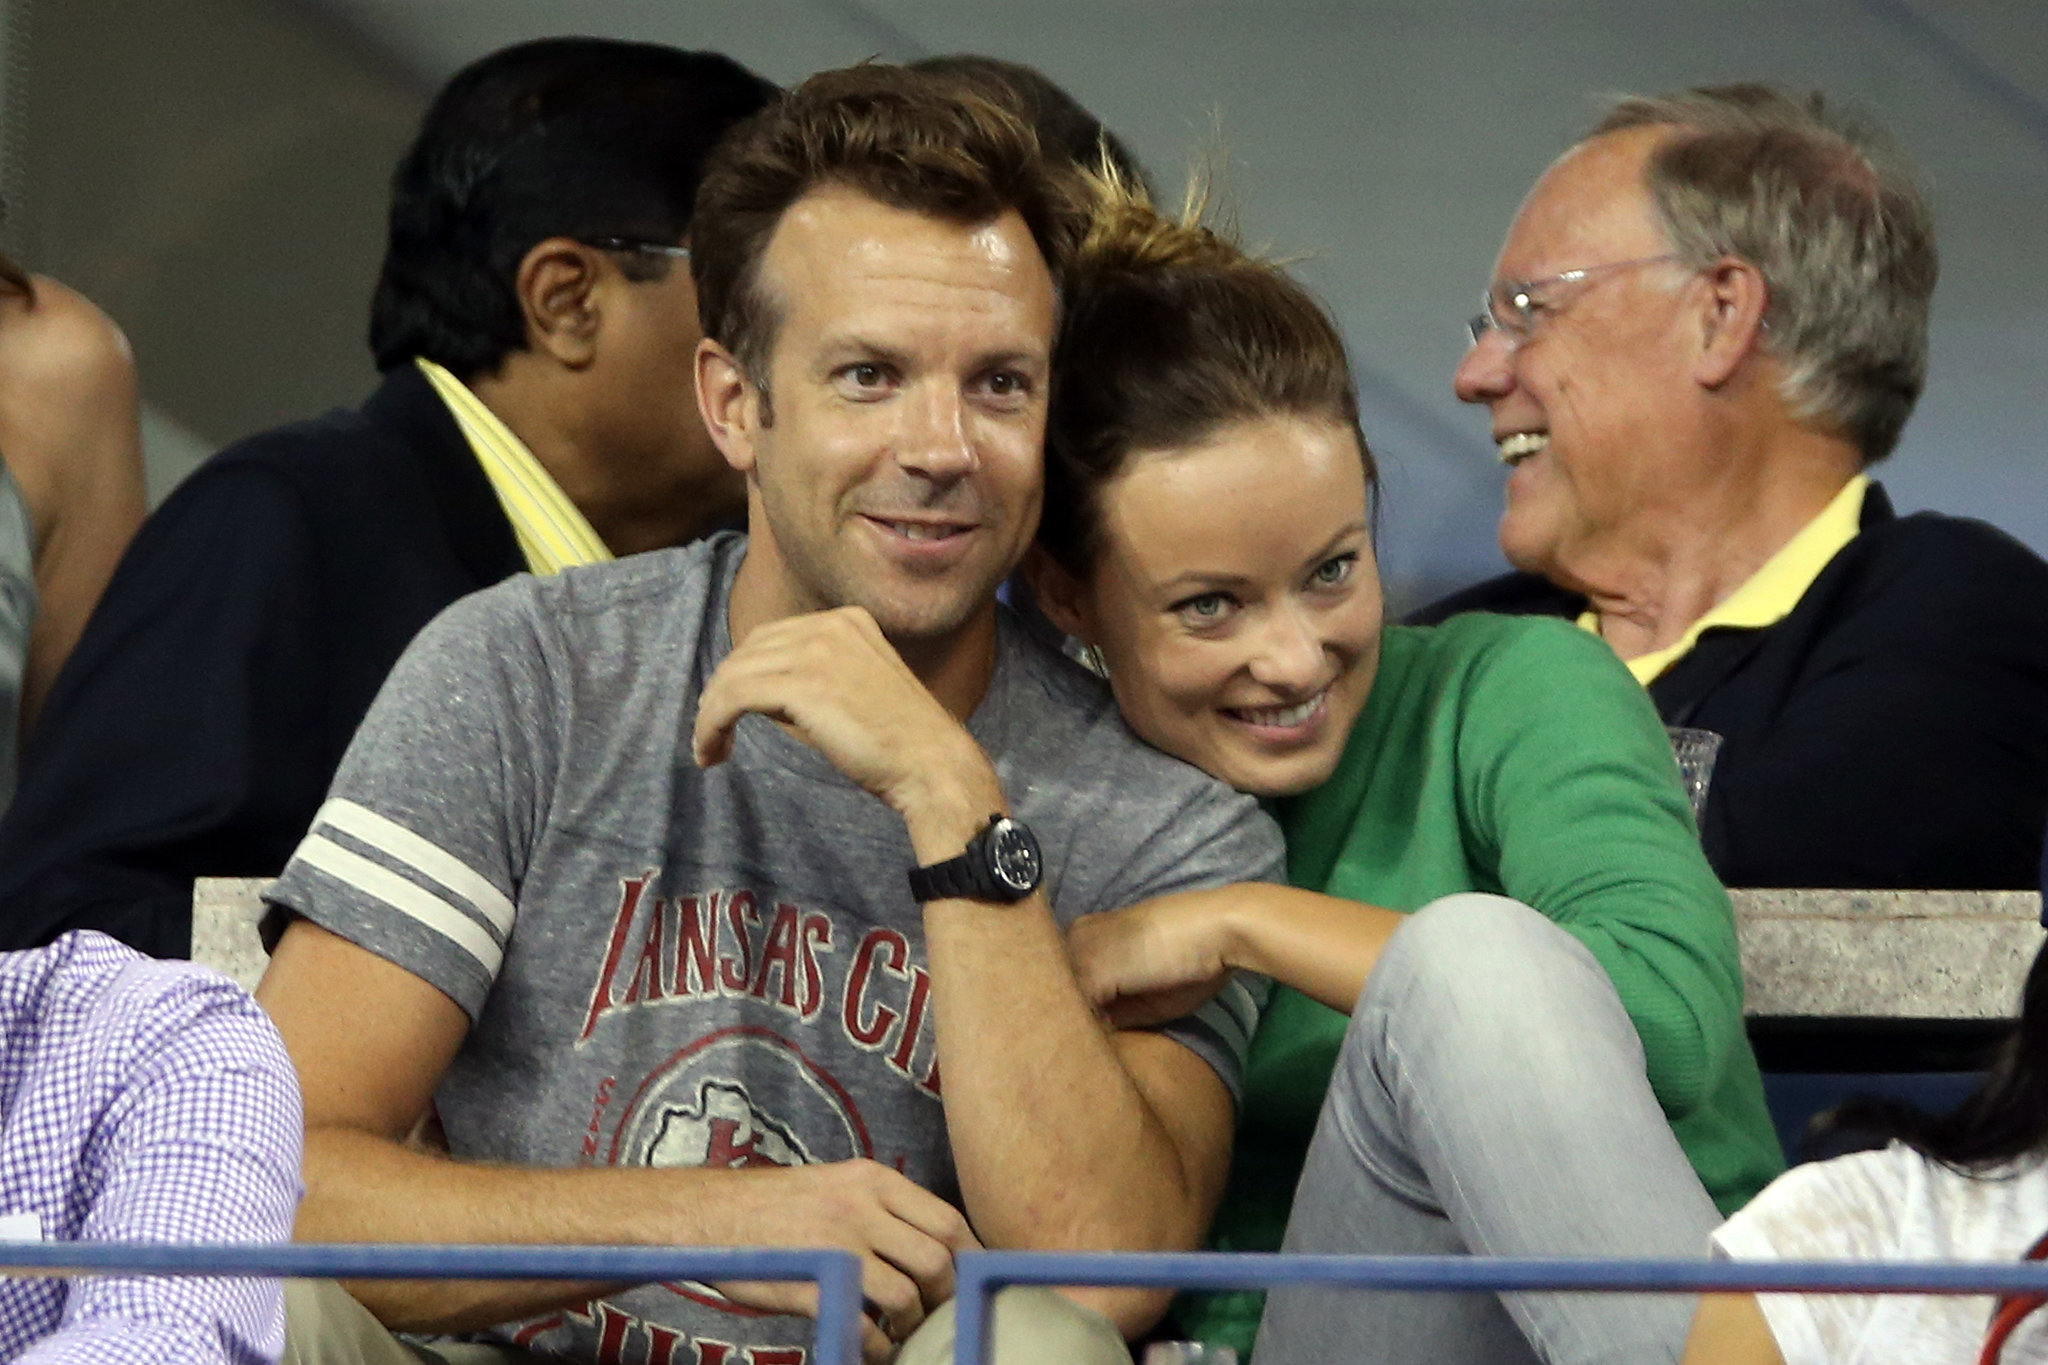 Jason Sudeikis and Olivia Wilde showed sweet PDA in the stands.